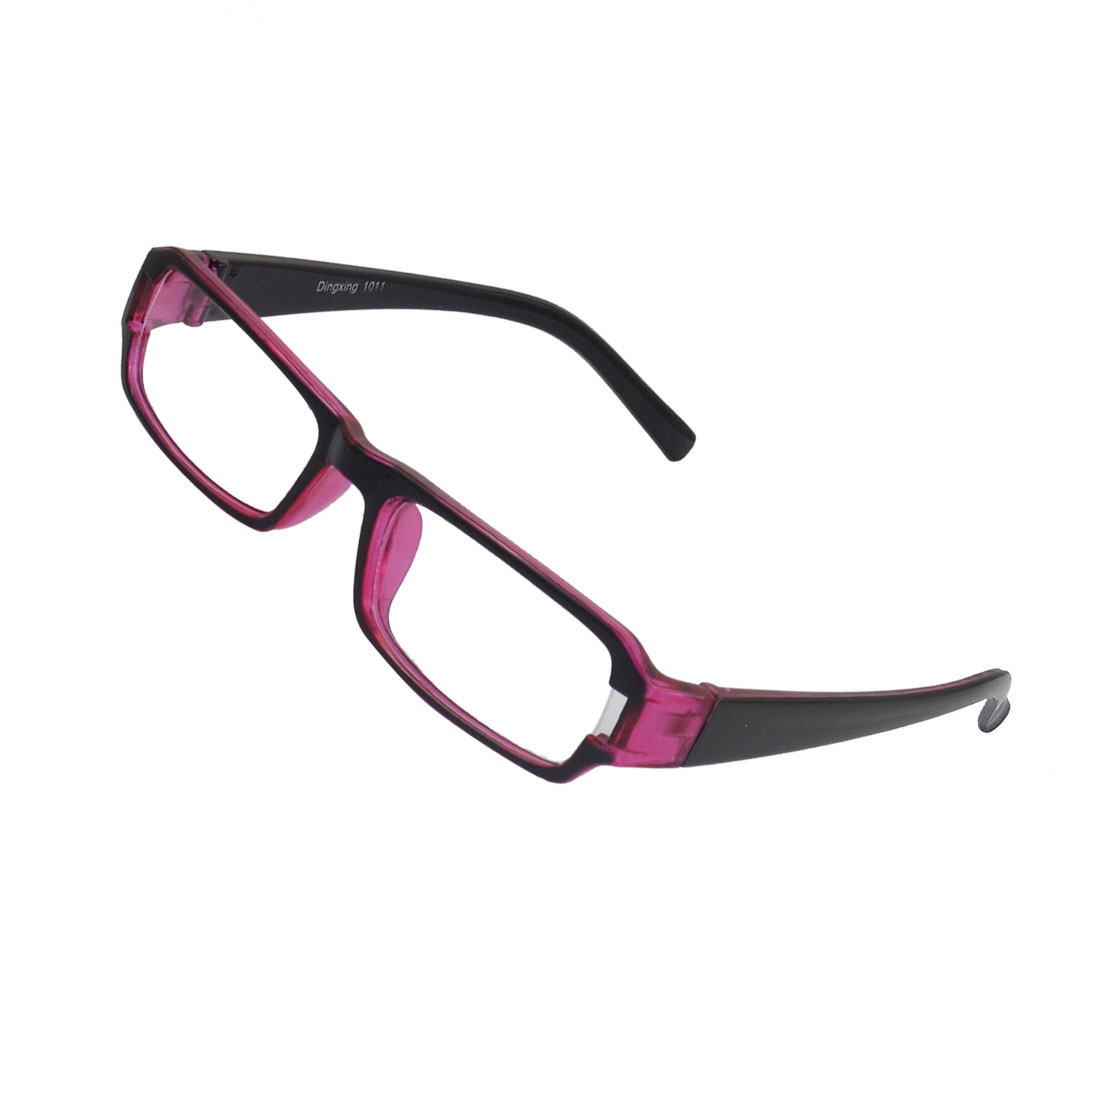 Lady Full Frame Rectangle Lens Plain Plano Glasses Eyeglass Black Fuchsia